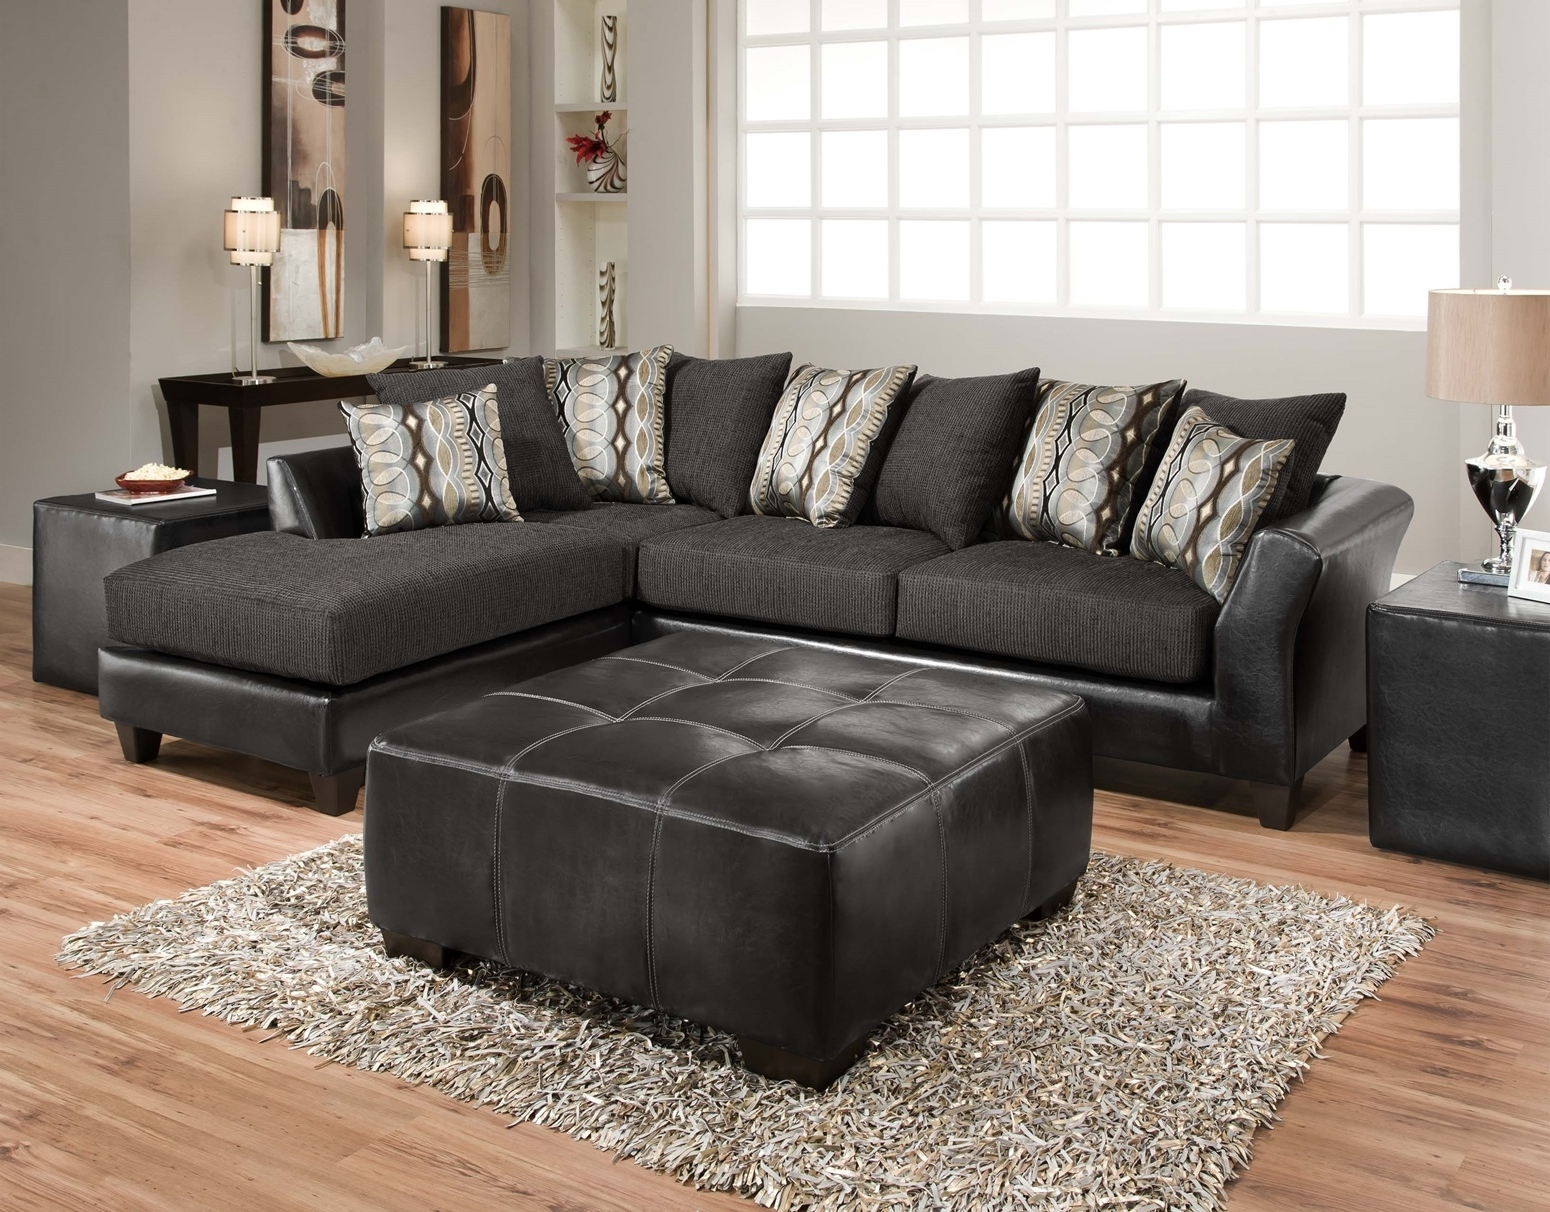 Living Room: Simple Sectional With Chaise For Small Space Living In Most Up To Date Charcoal Sectionals With Chaise (View 11 of 15)